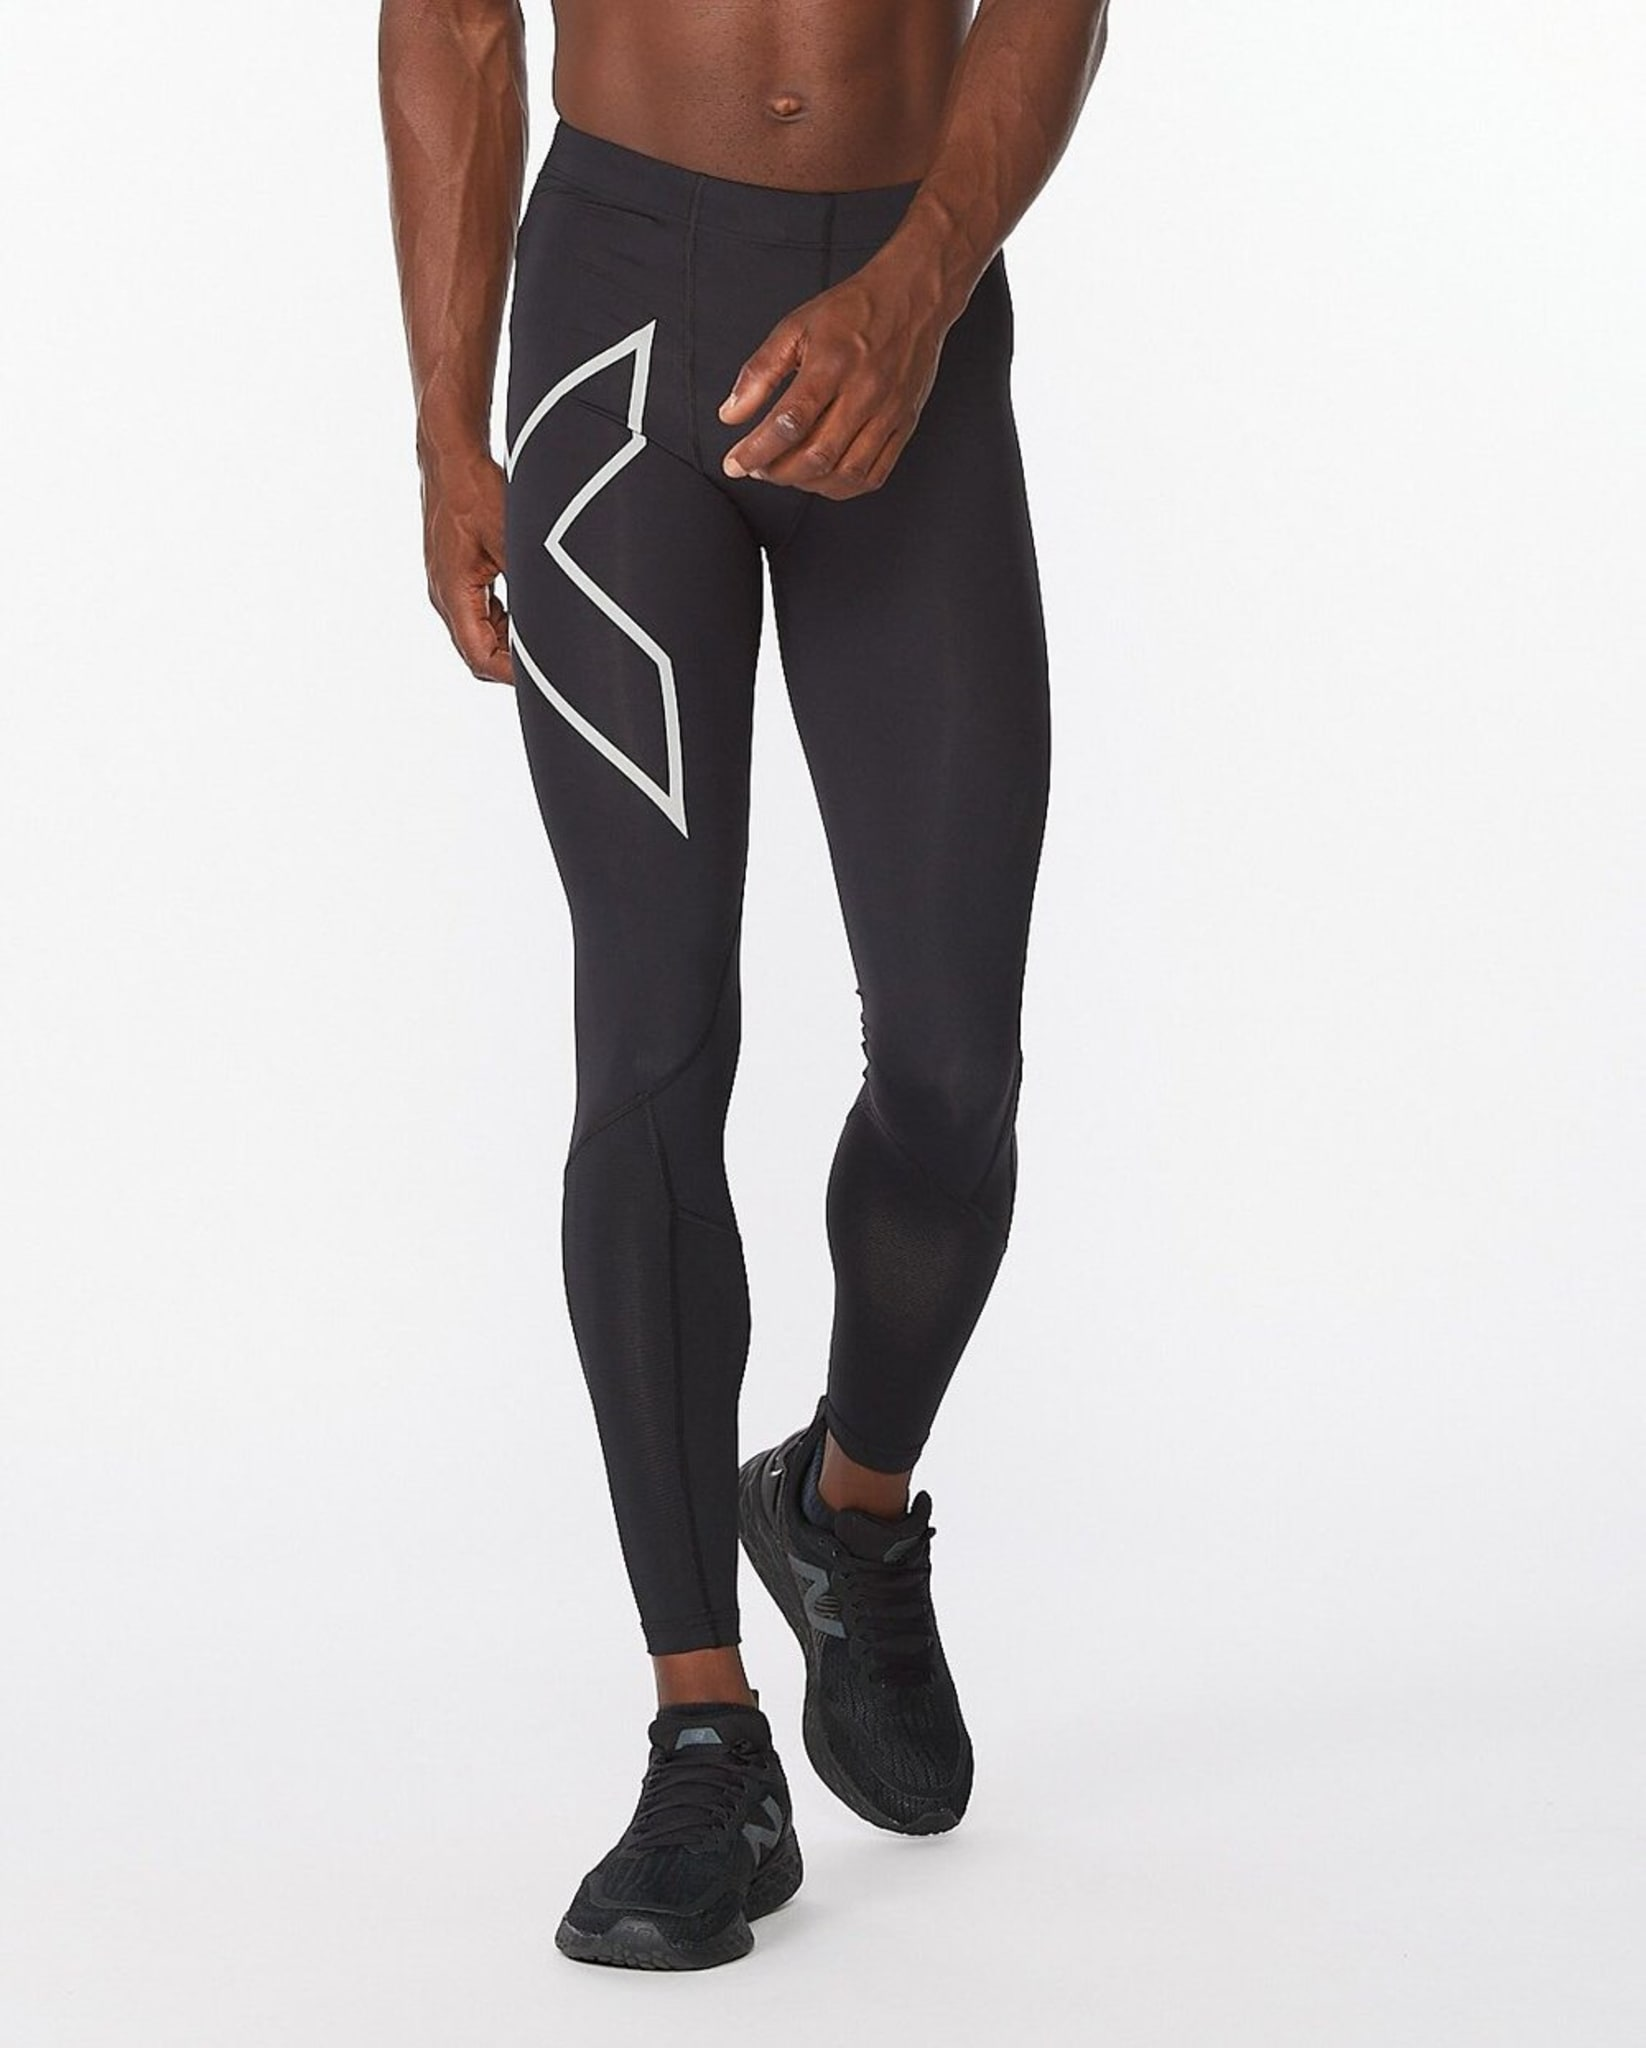 Aero Vent Compression Tights er designet for å lindre overoppheting mens du løper, og har PWX VENT-paneler for å forbedre luftstrømmen og holde deg avkjølt når løpeturen din blir varm.